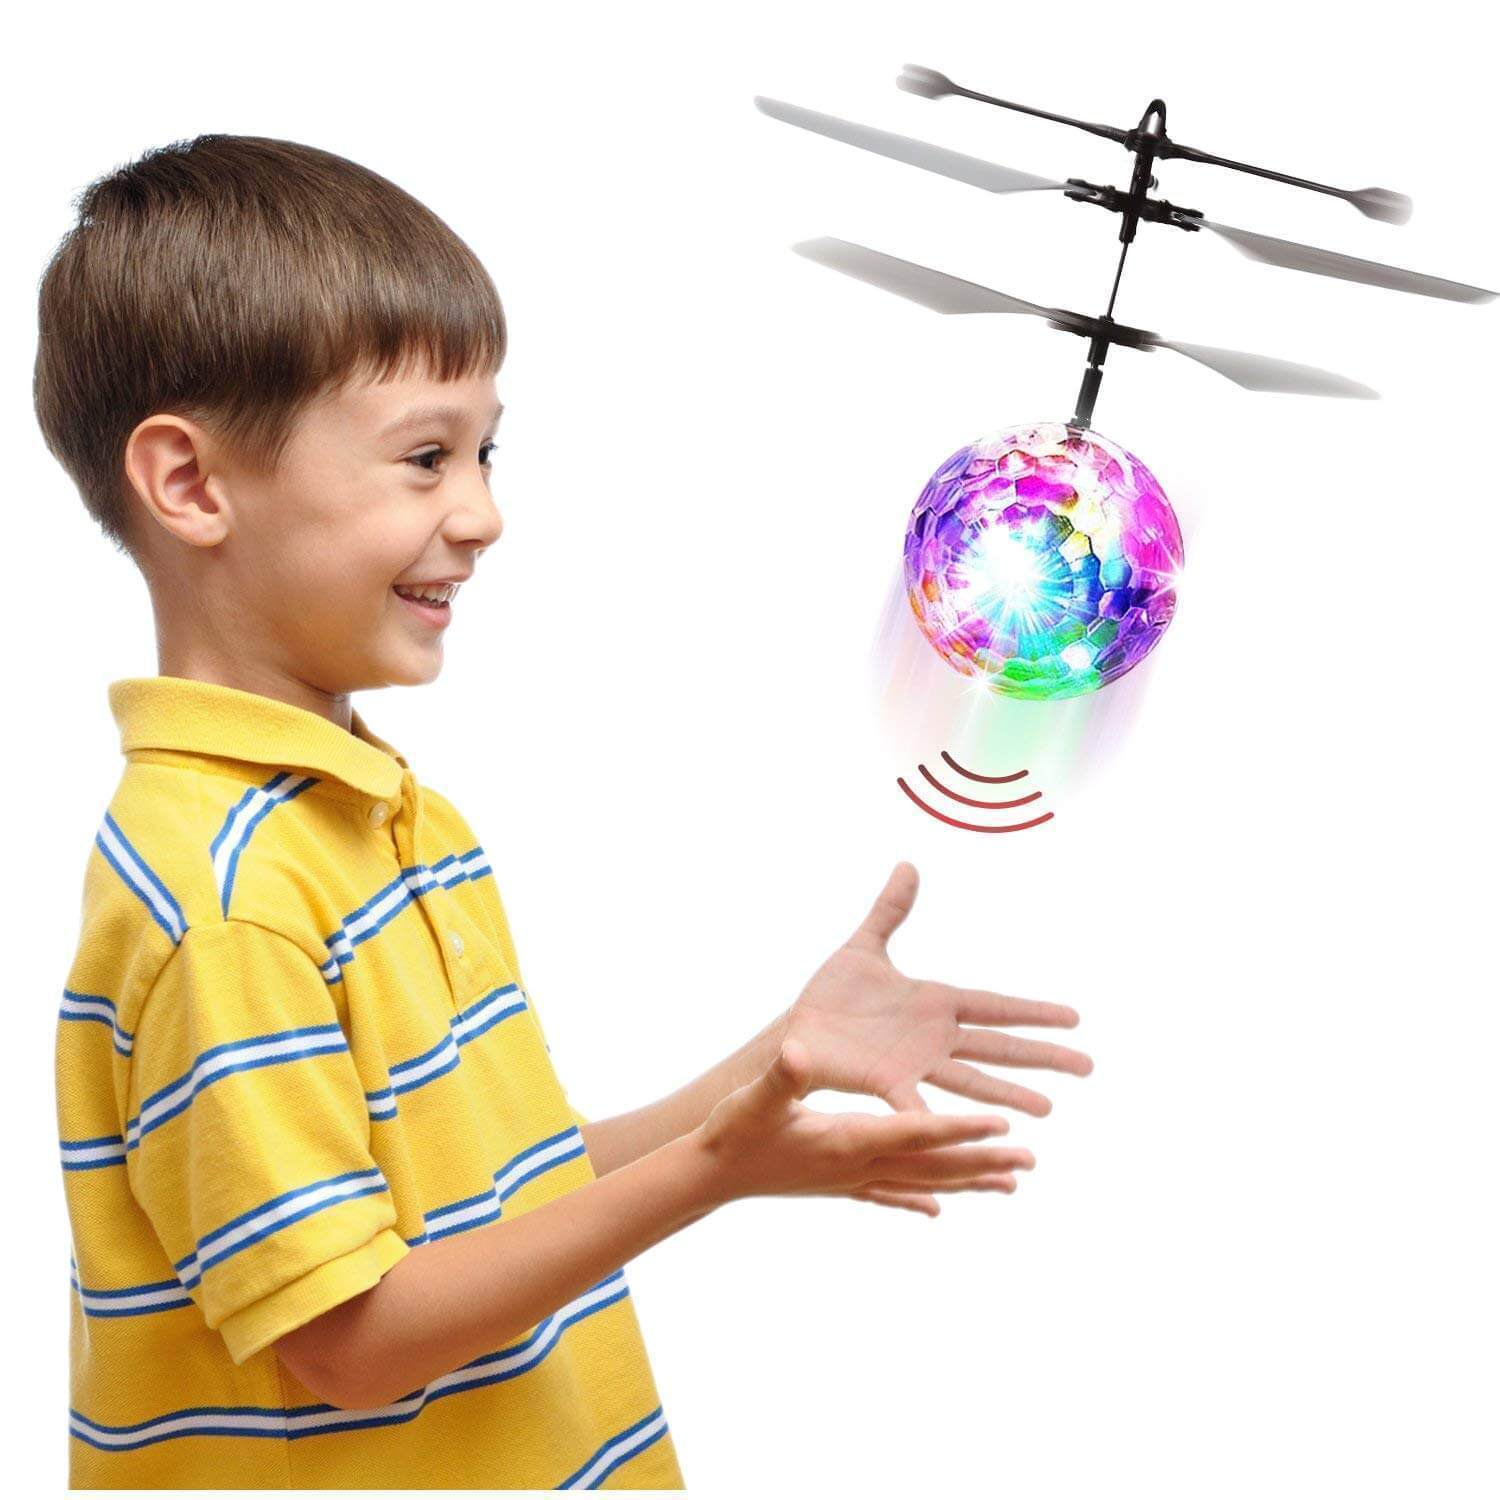 Best Drone For Beginners - Drones For Sale - Mini Drones For Kids - Best Flying Luminous Drone For Kids - - Shopptique